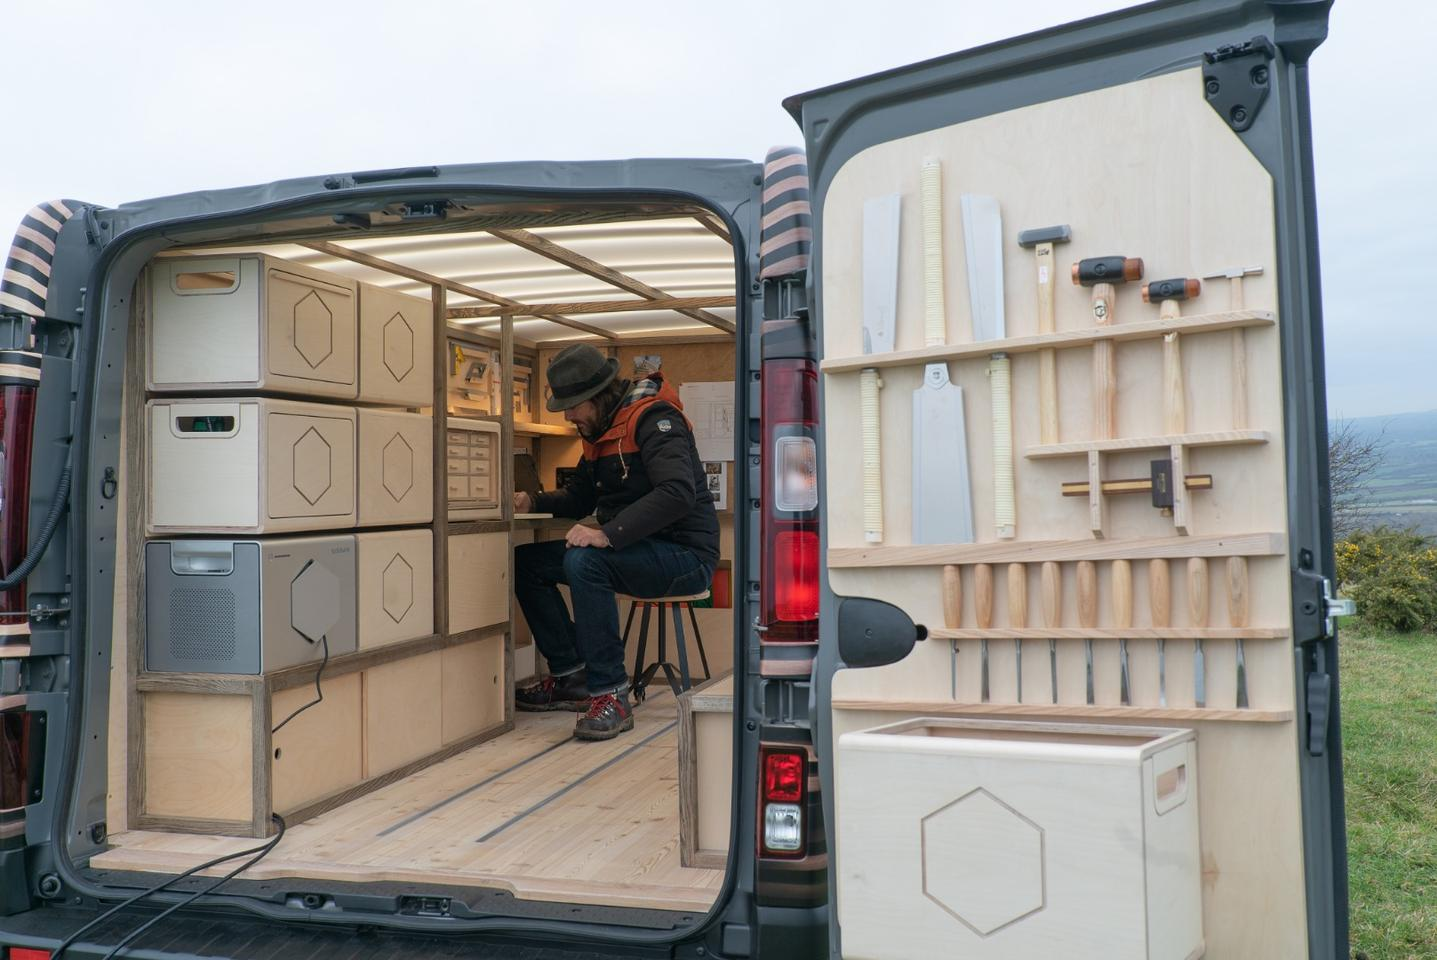 Through a series of imaginative concepts we're seeing how Nissan's versatile NV series vans can be decked out for nomadically minded folks in need of working space